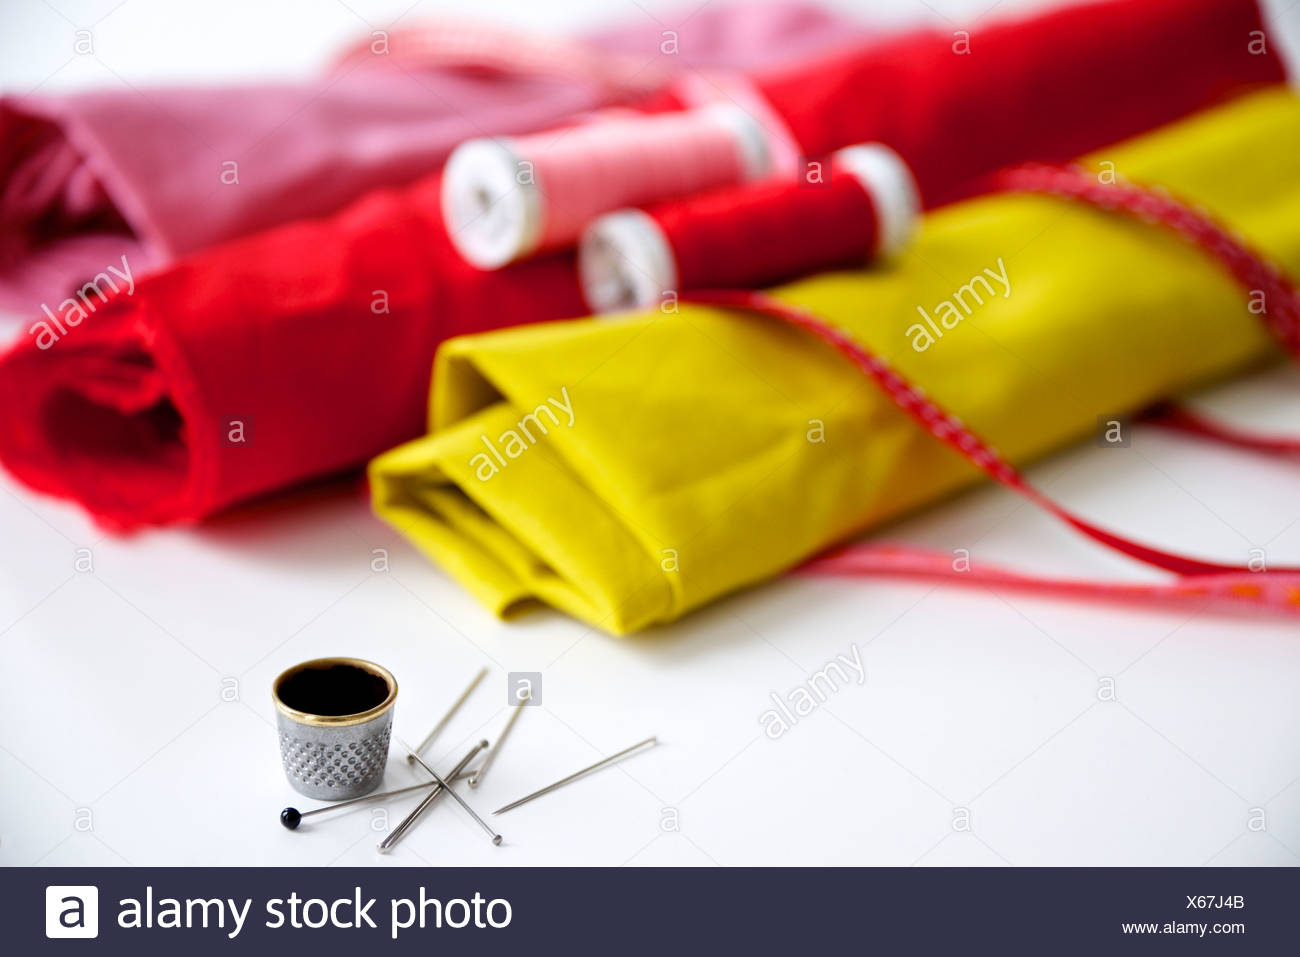 Sewing materials and fabric, Munich, Bavaria, Germany - Stock Image